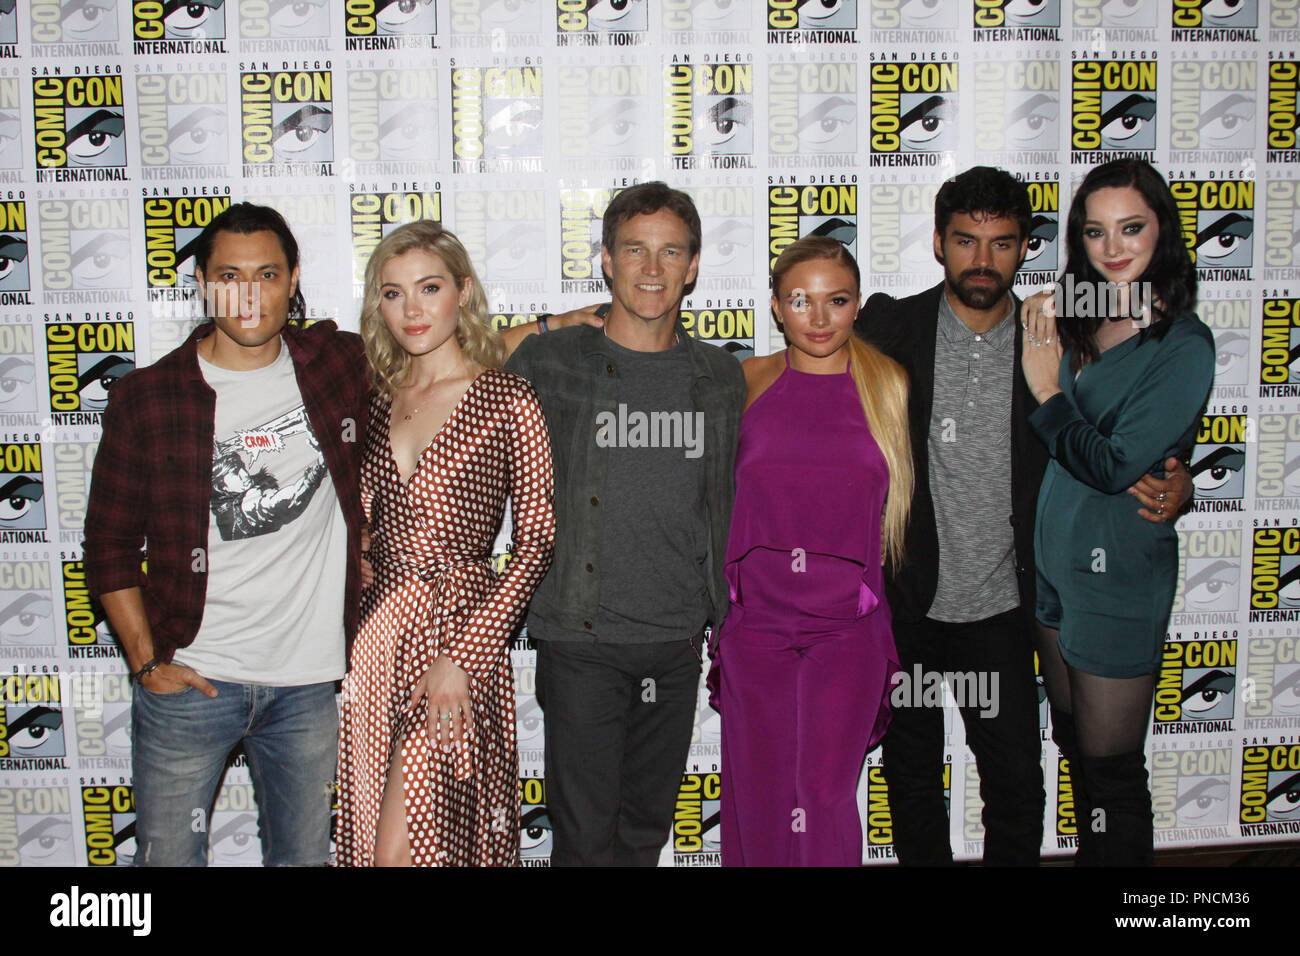 Blair Redford, Skyler Samuels, Stephen Moyer, Natalie Alyn Lind, Sean Teale and Emma Dumont promoting the next season of 'The Gifted' At San Diego Comic Con International 2018. Held at the Hilton Bay Front in San Diego, CA. July 21, 2018. Photo by: Carrie Chavez / PictureLux - Stock Image